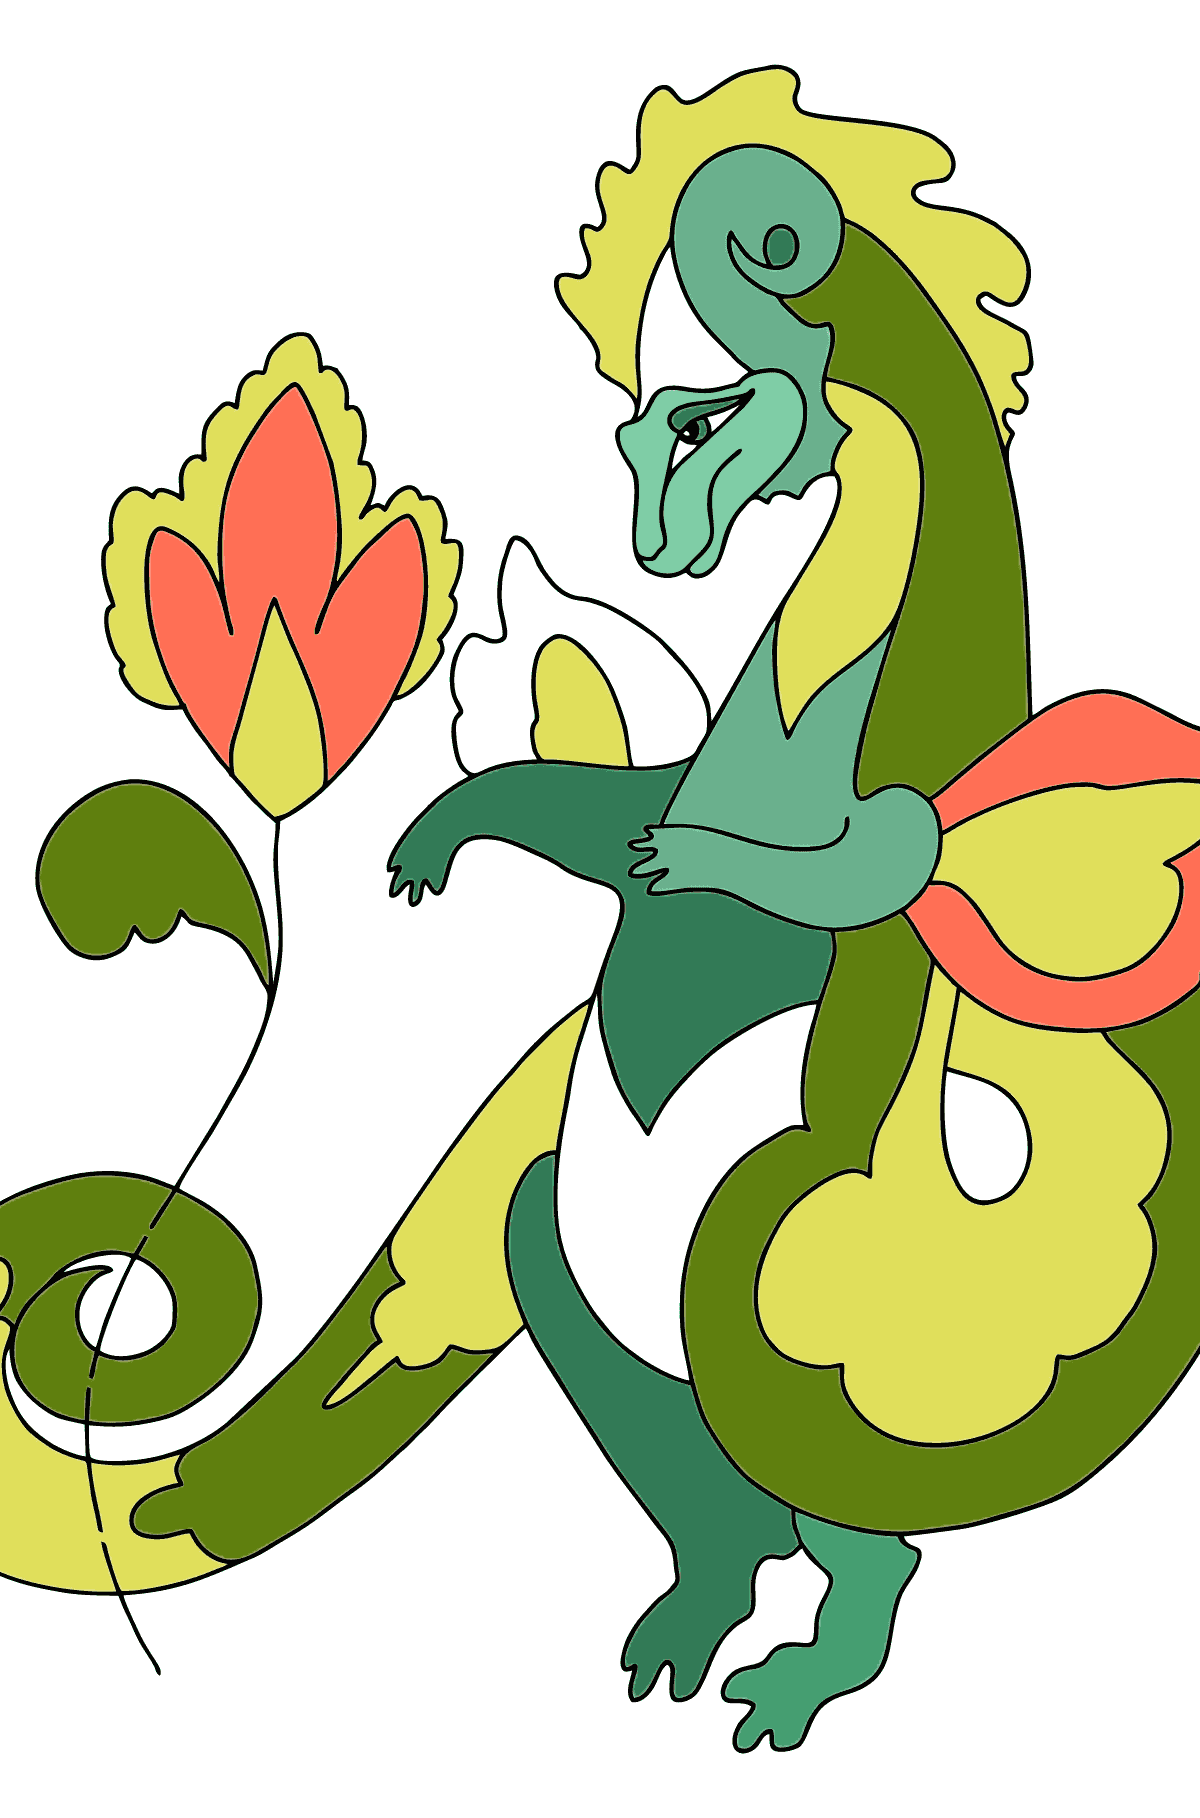 Coloring Page - A Dragon is Admiring a Flower - Coloring Pages for Children